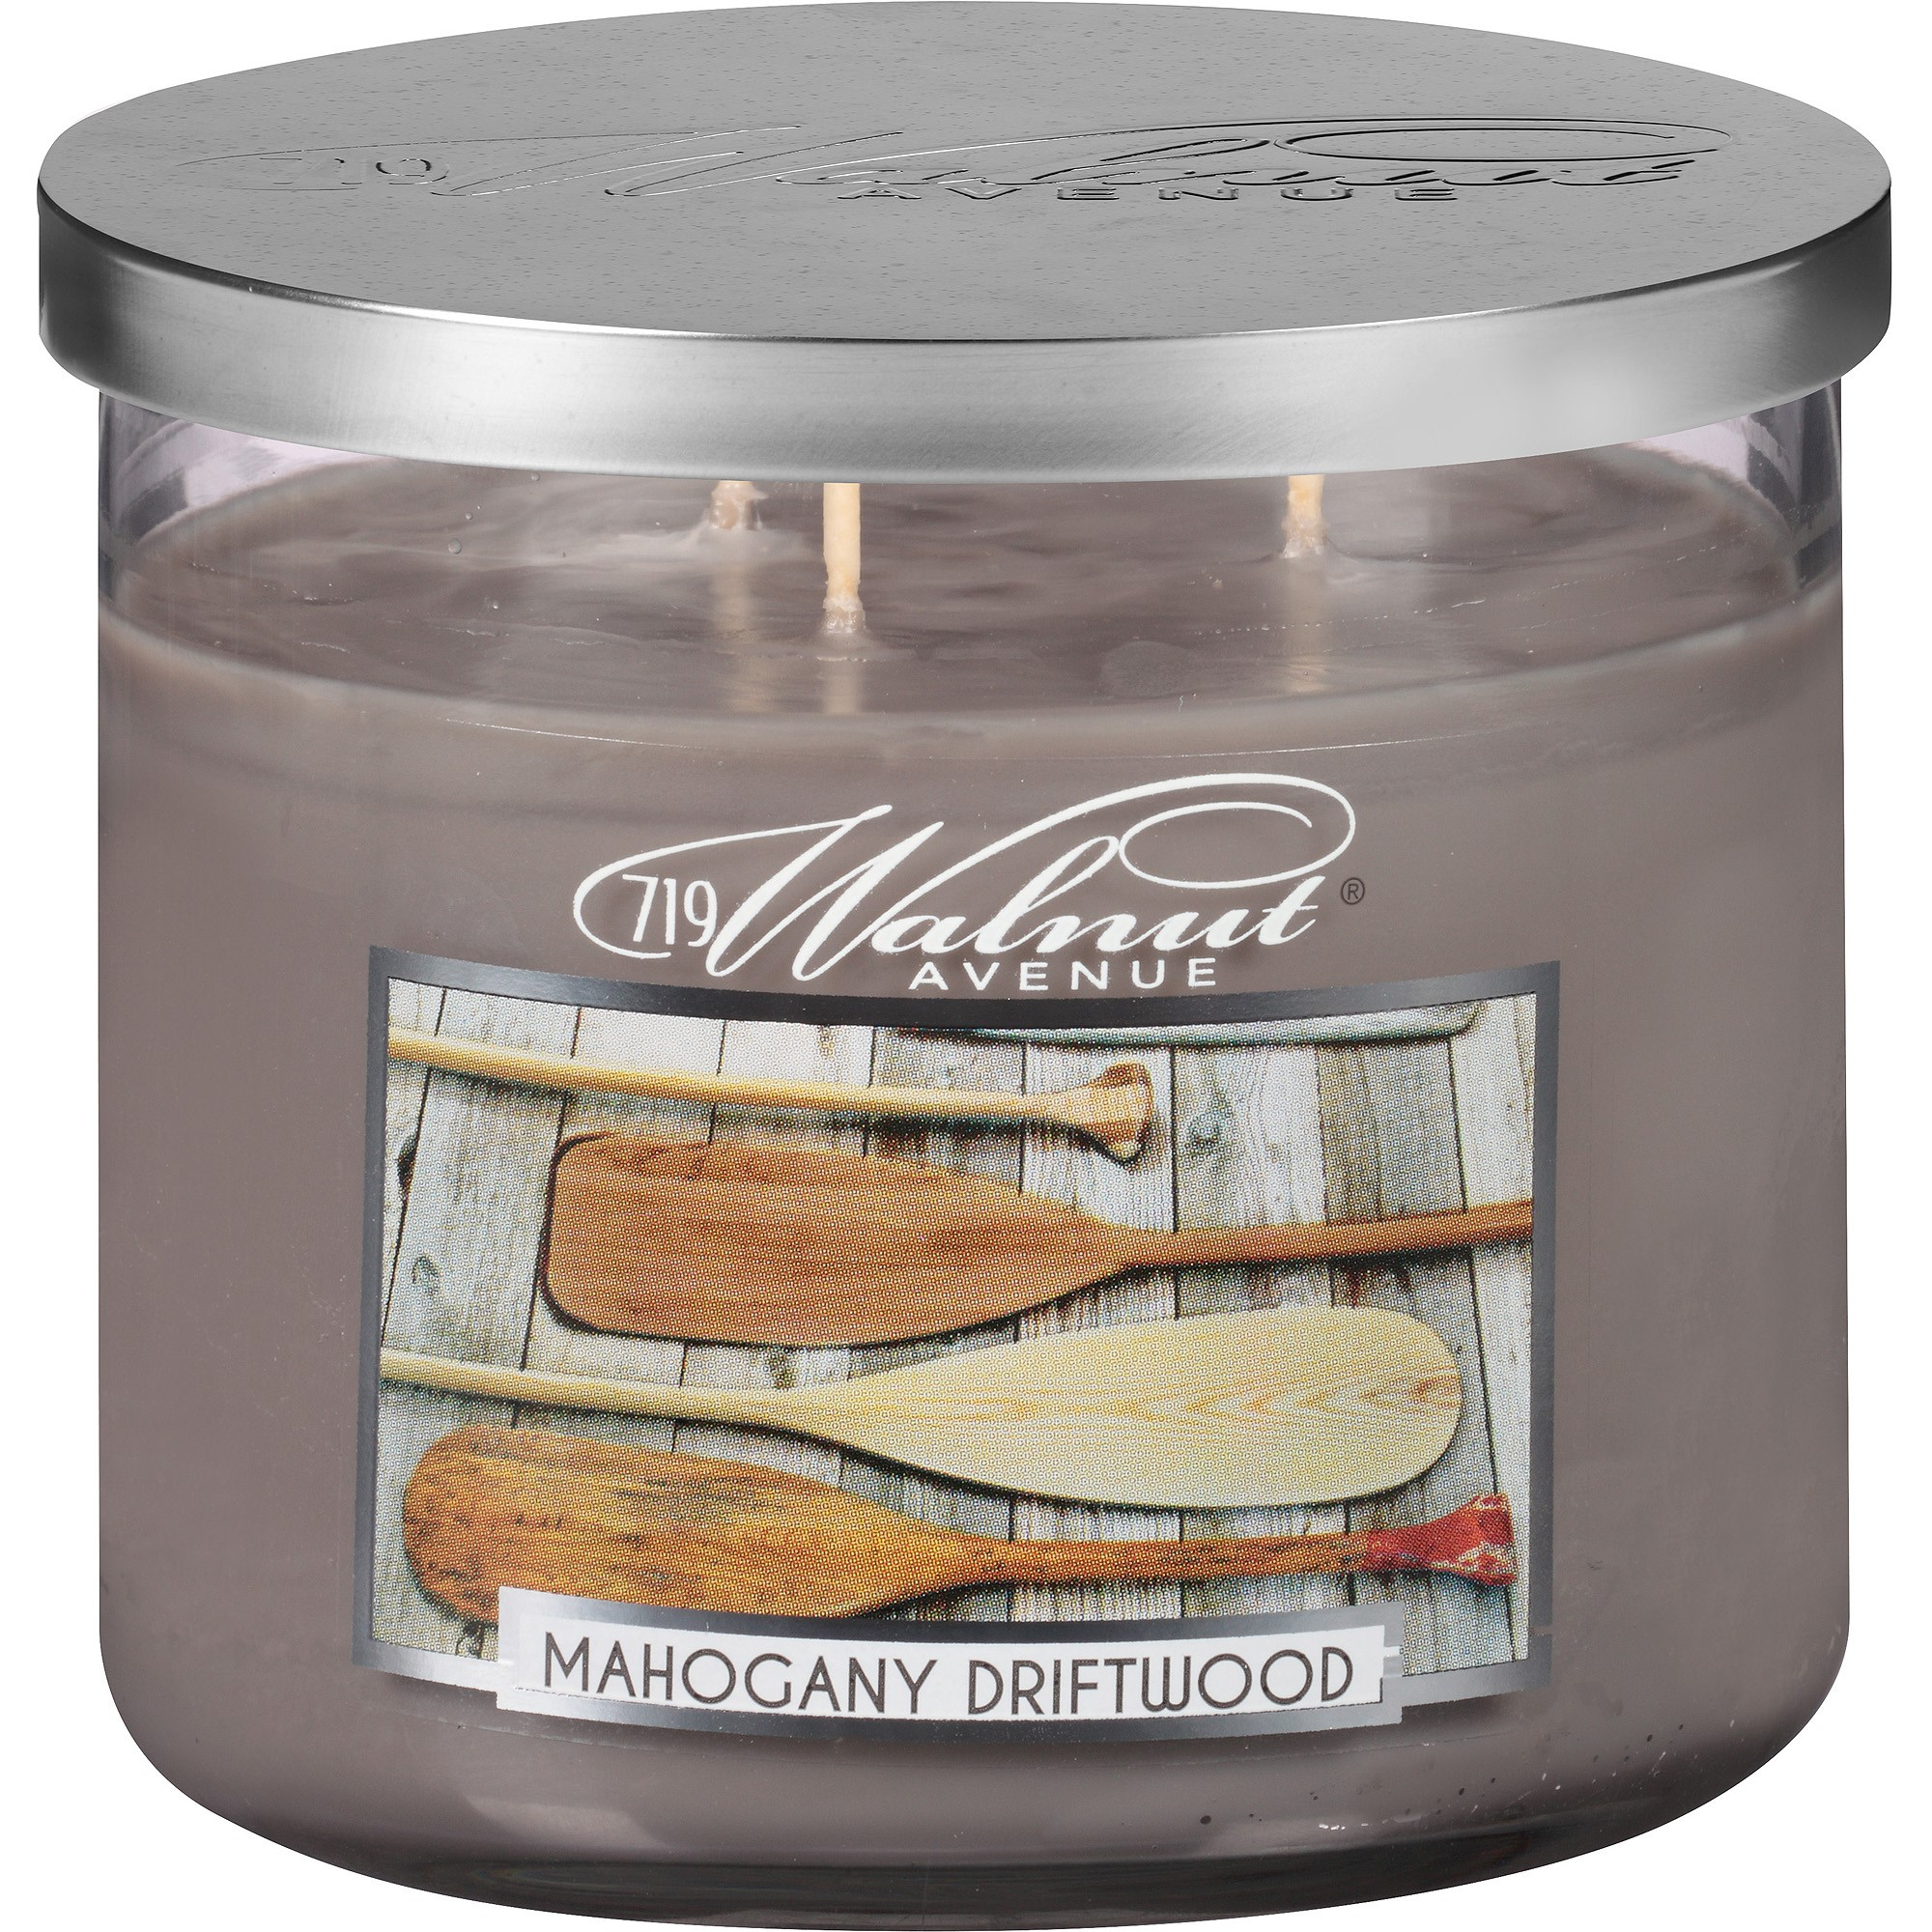 Click here to buy 719 Walnut Avenue Scented Candle, Mahogany Driftwood, 14 Oz by 719 Walnut Avenue.